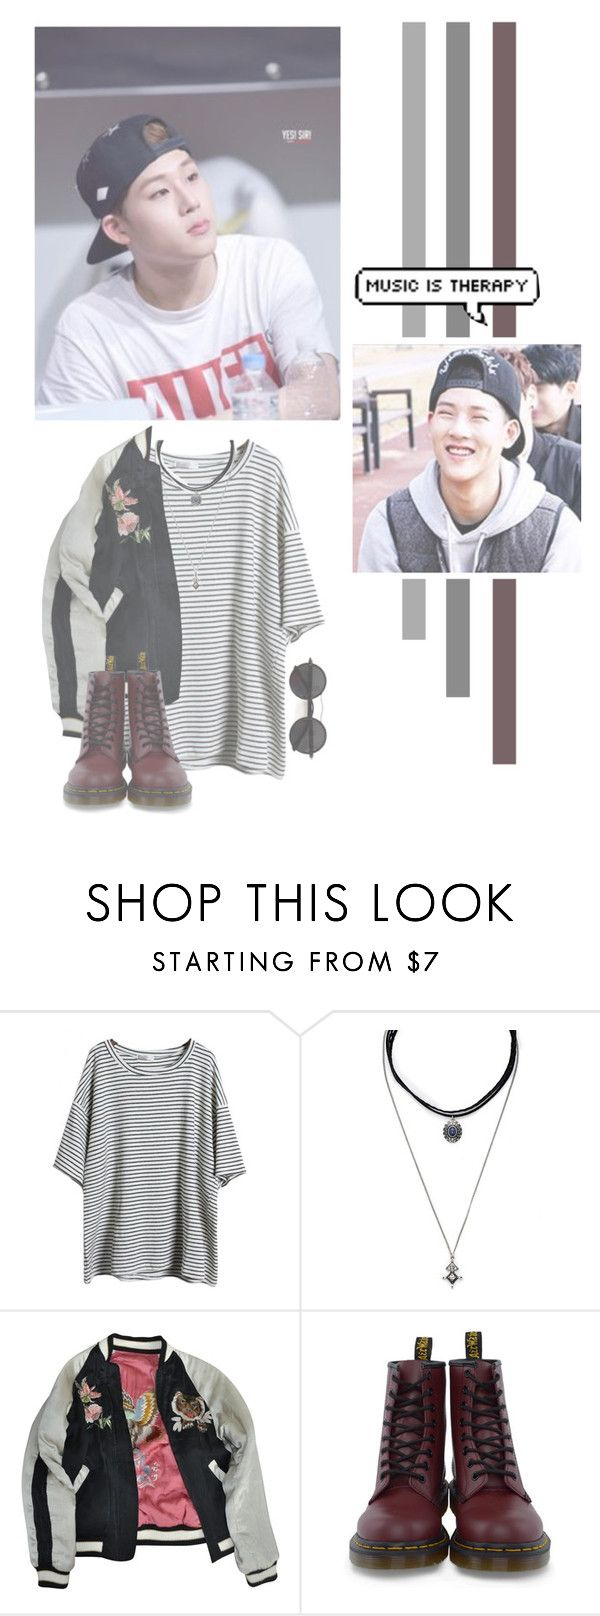 """Lee Jooheon"" by lazy-alien ❤ liked on Polyvore featuring Forever 21, Isabel Marant, Dr. Martens, Chicnova Fashion, Jooheon, monstax and LeeJooheon"